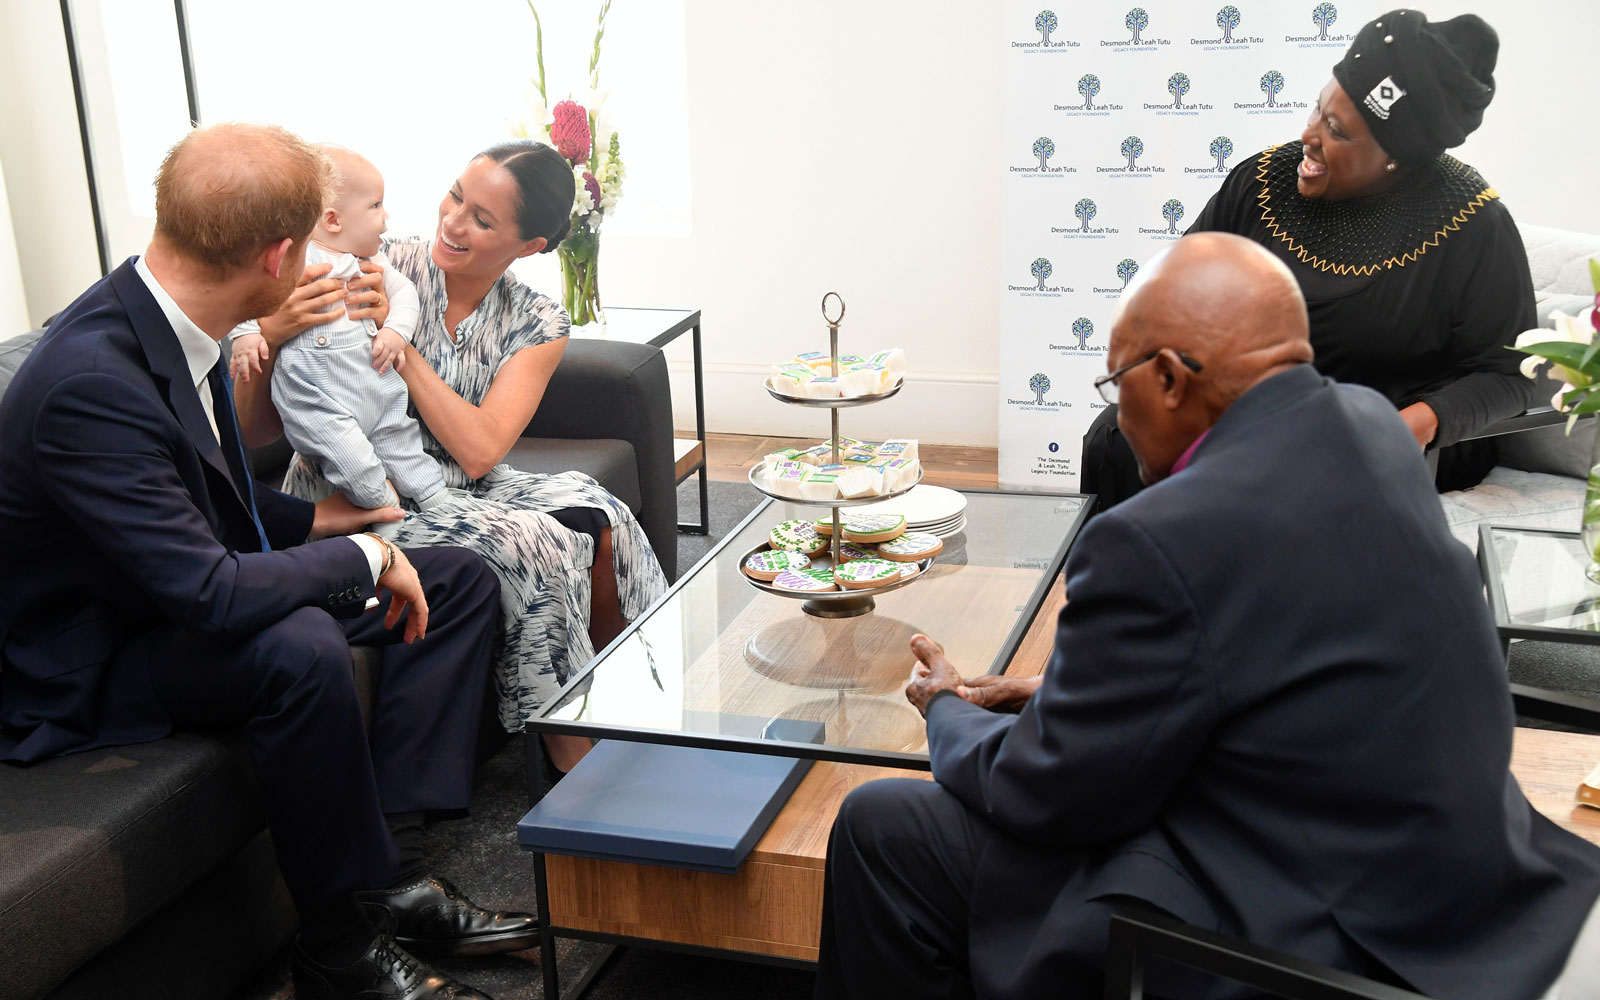 Meghan Markle, Prince Harry, and Archbishop Desmond Tutu